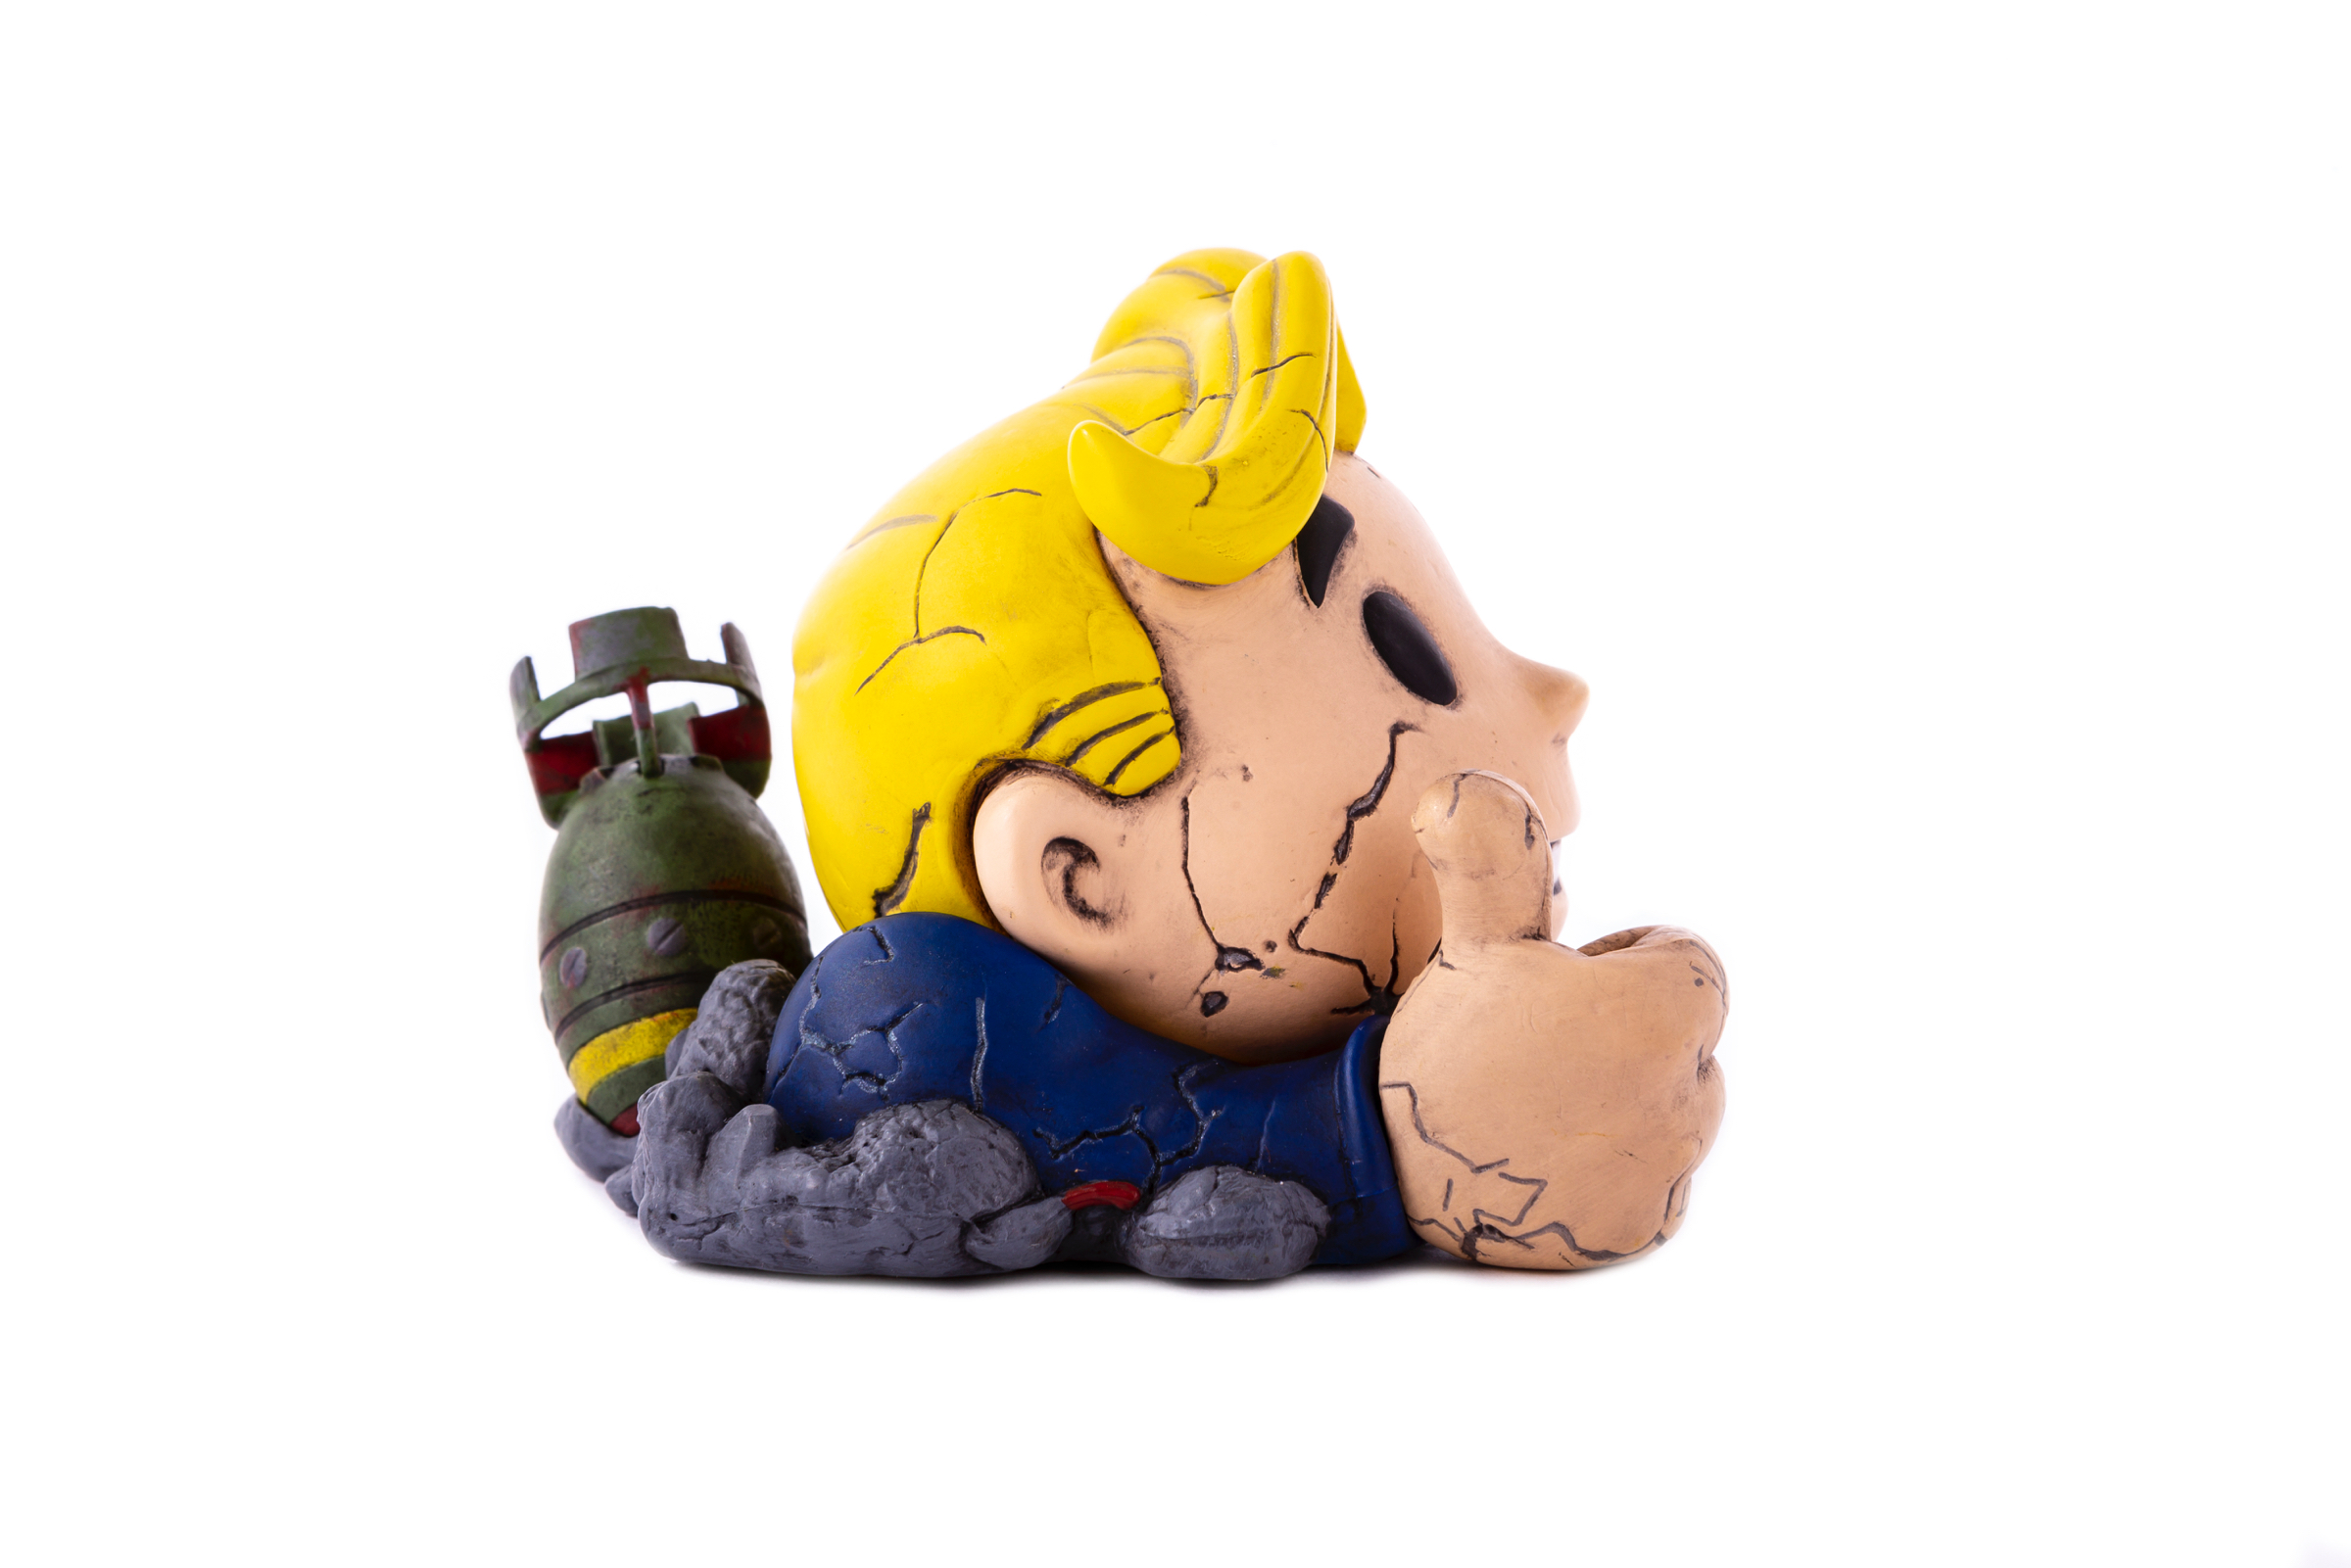 Vault Boy Mondoid Vinyl Figure